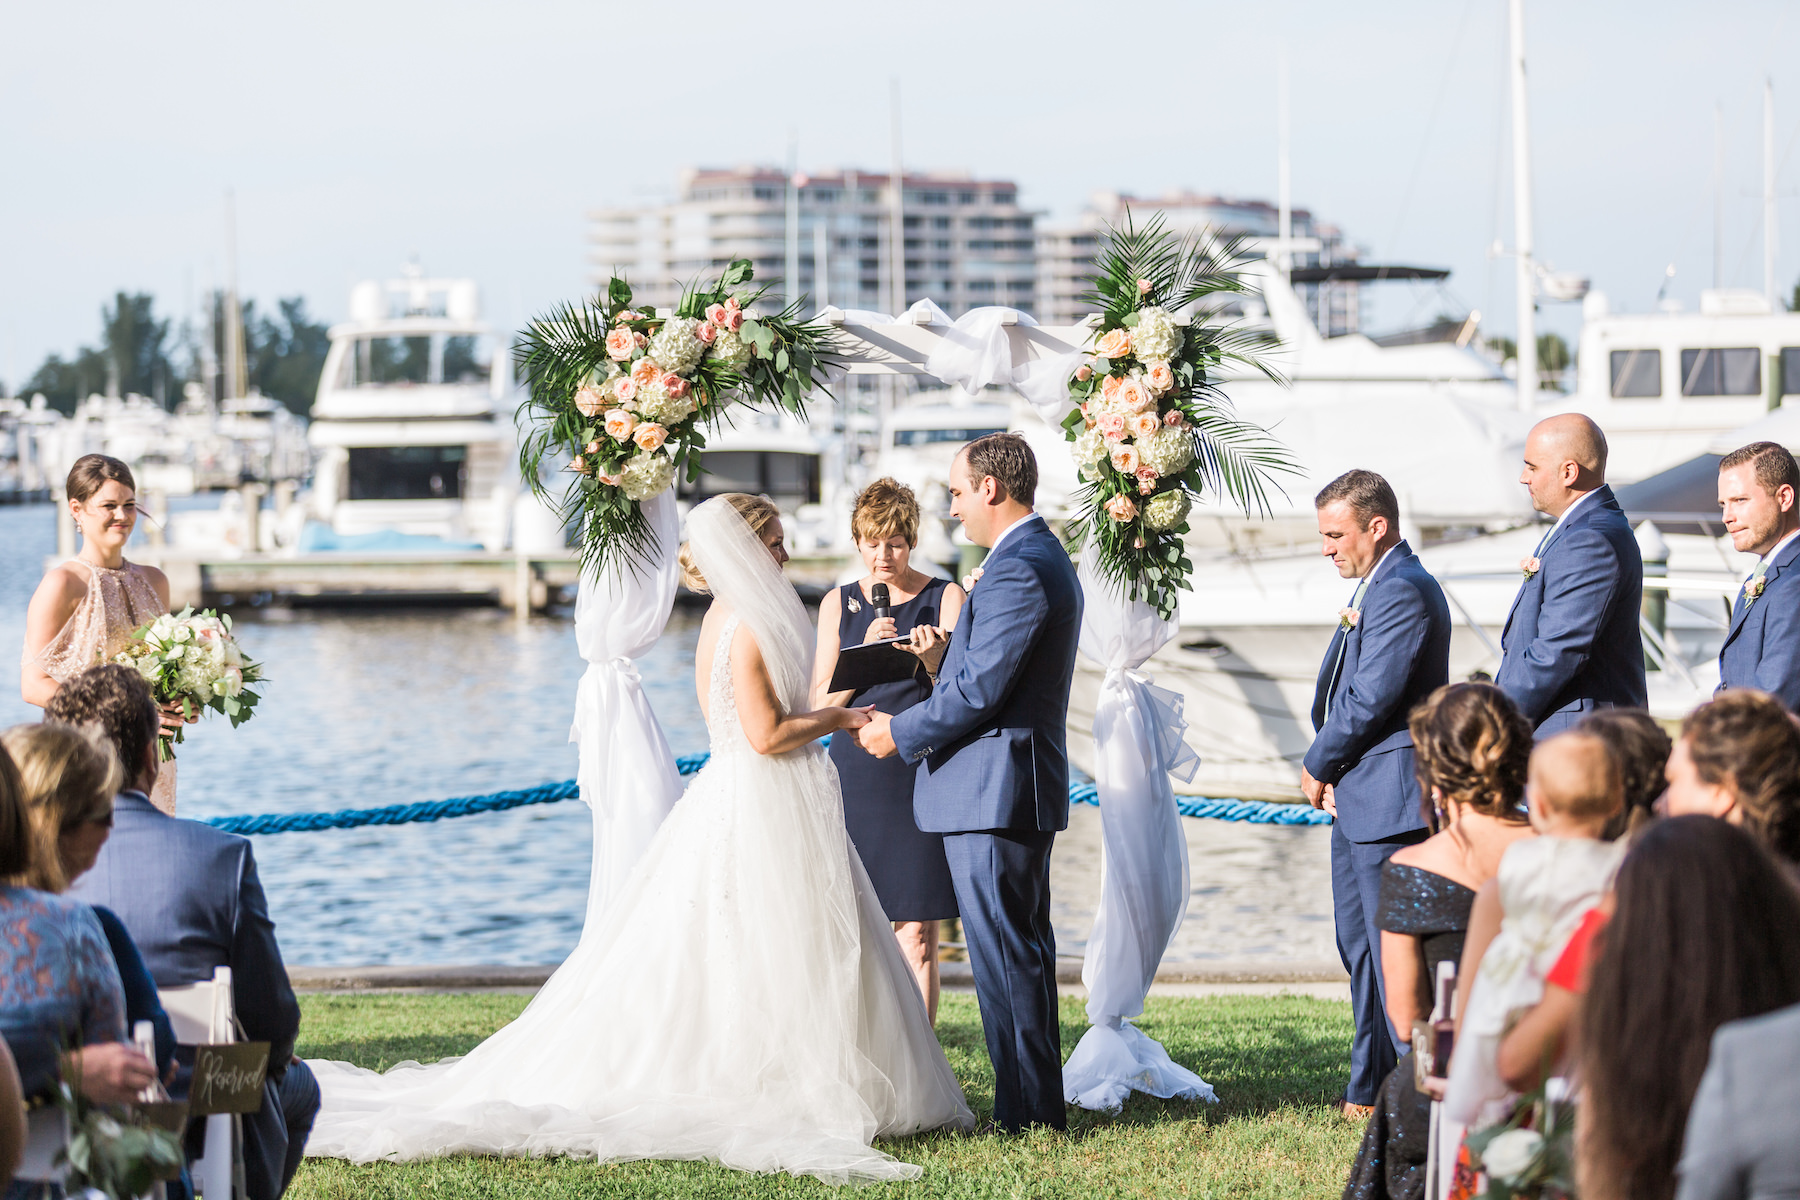 Peach, Pink, and White Wedding Ceremony Arch Decor with Greenery and Draping | Tropical Waterfront Florida Lawn Wedding Ceremony | Sarasota Wedding Venue The Resort at Longboat Key Club Marina | Sarasota Wedding Officiant A Wedding with Grace